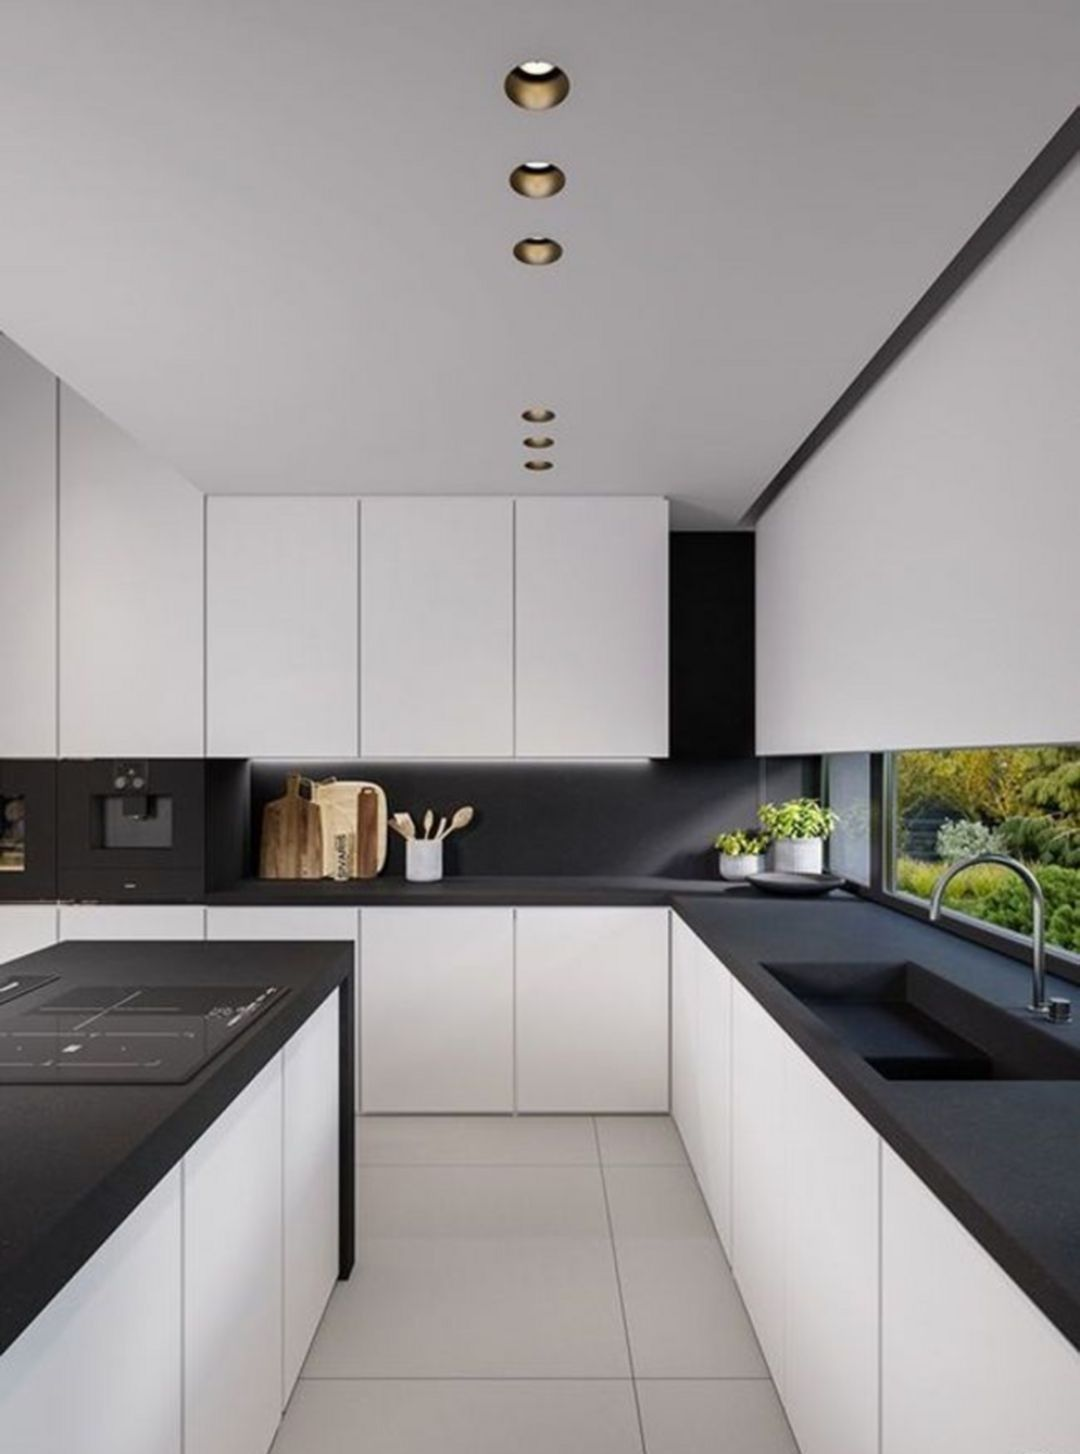 Amazing Here Are 15 Modern Minimalist Kitchen Design Ideas In 2019 White Kitchen Decor White Kitchen Design Kitchen Cabinet Design